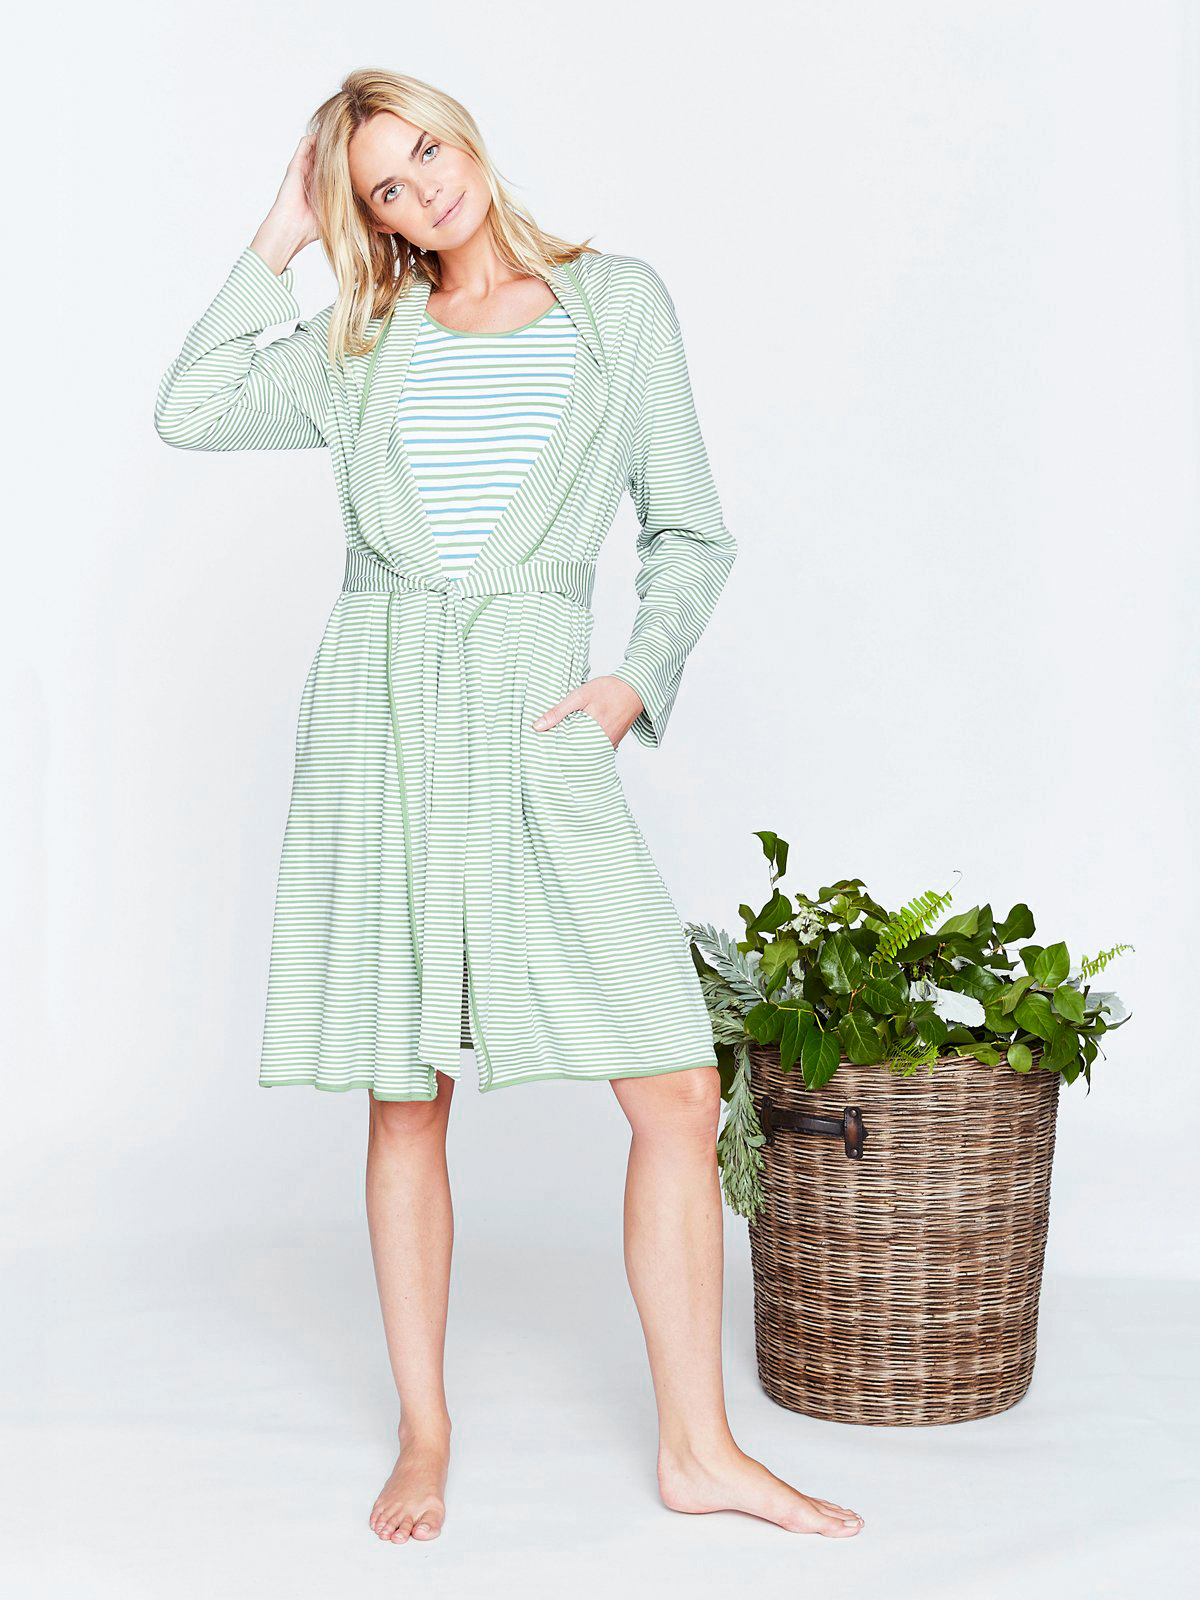 cotton anniversary gift robe green striped woman